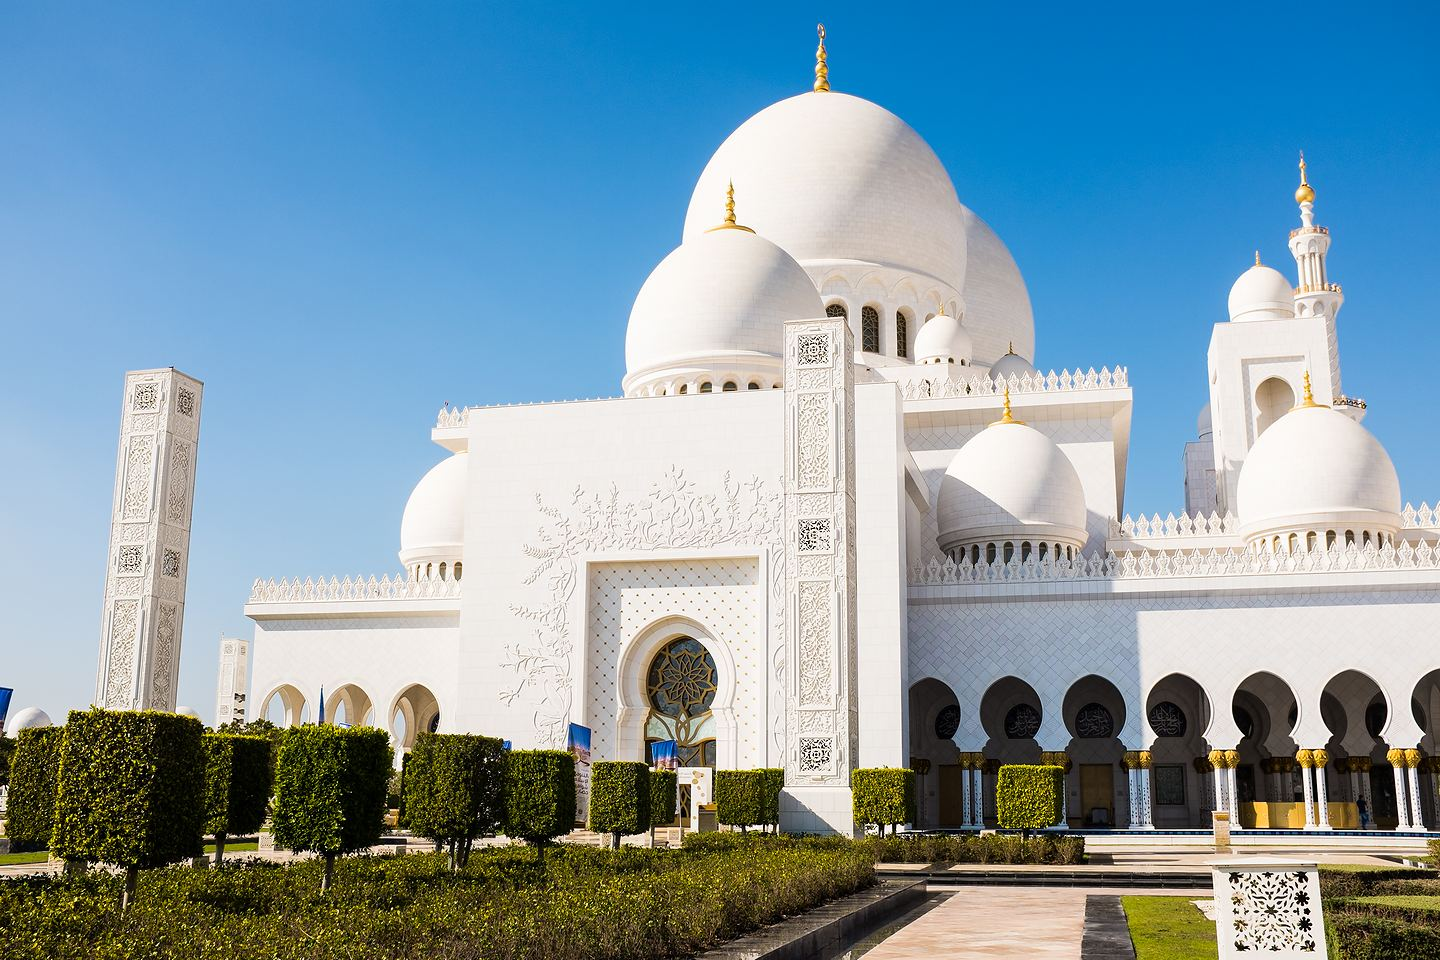 Sheikh Zayed Grand Mosque, Abu Dhabi (Emiraty Arabskie)